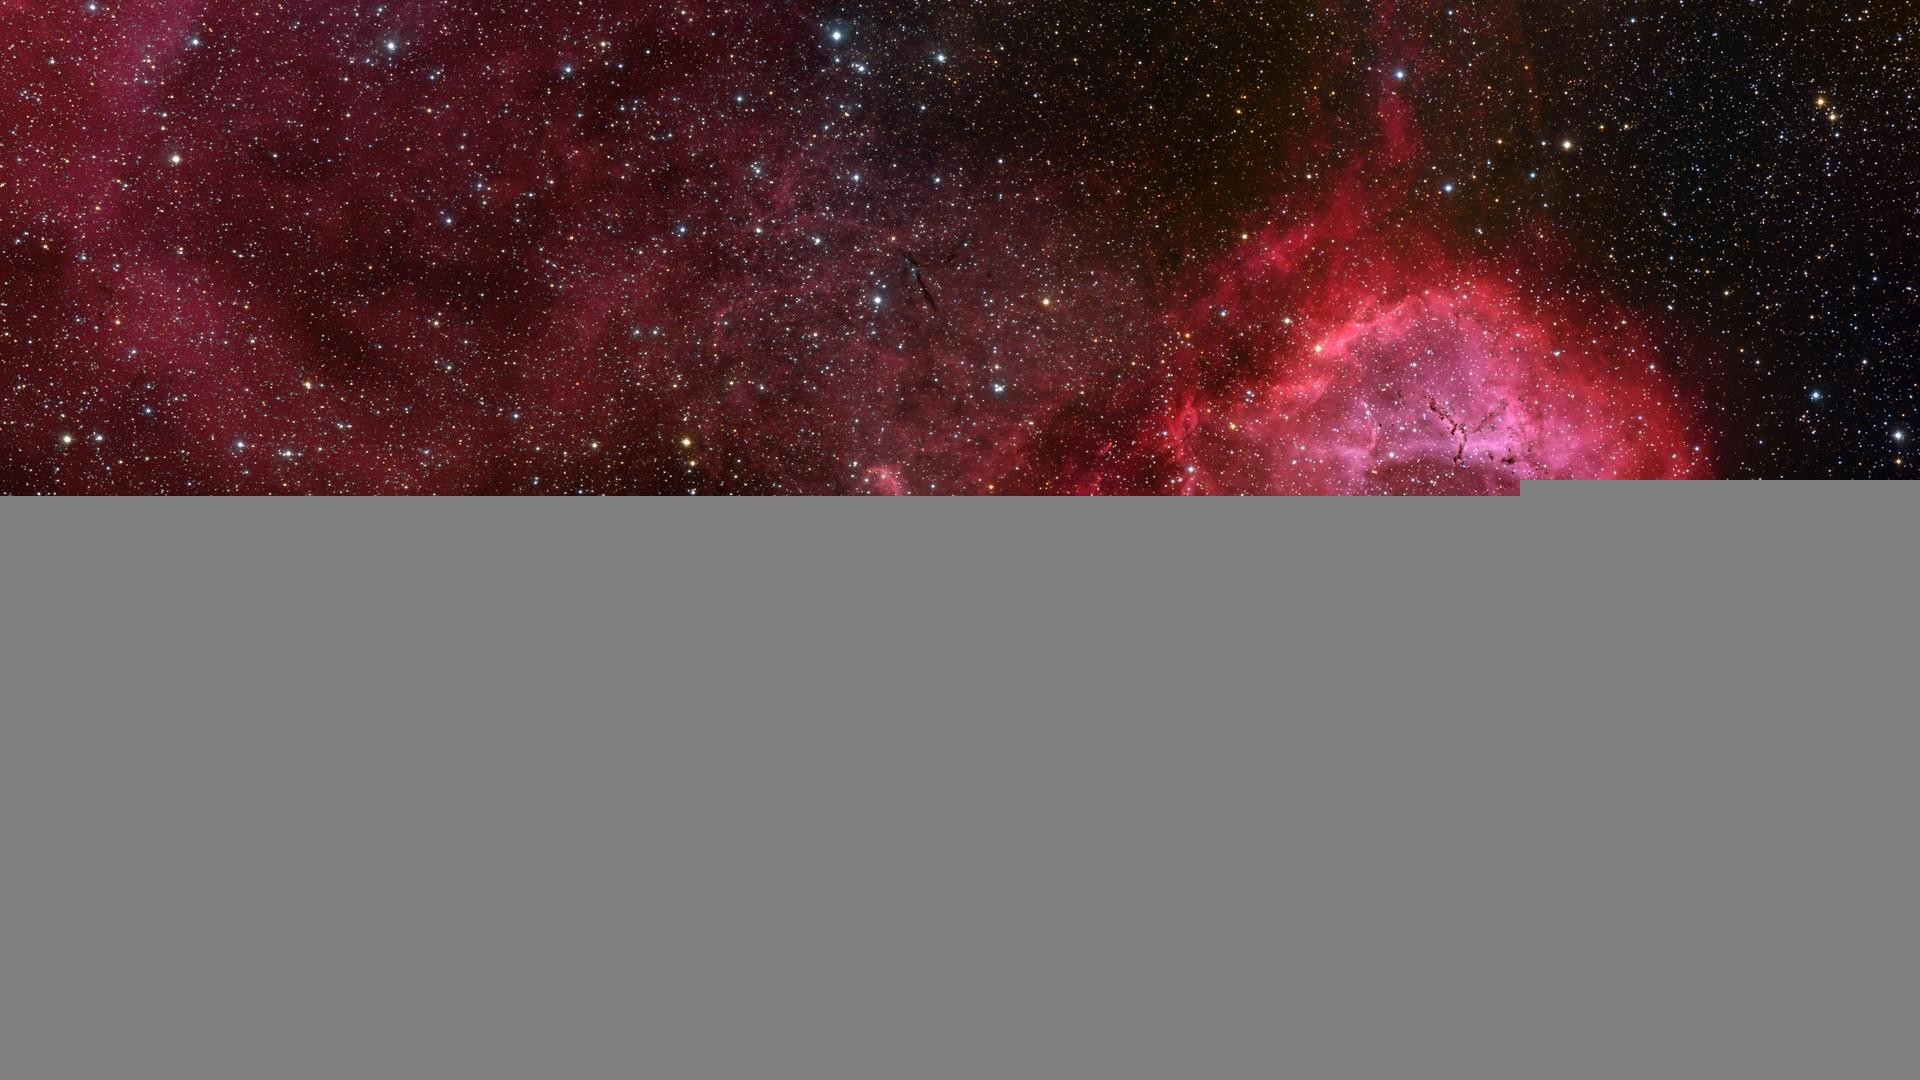 Galaxy Desktop Backgrounds 83 Pictures